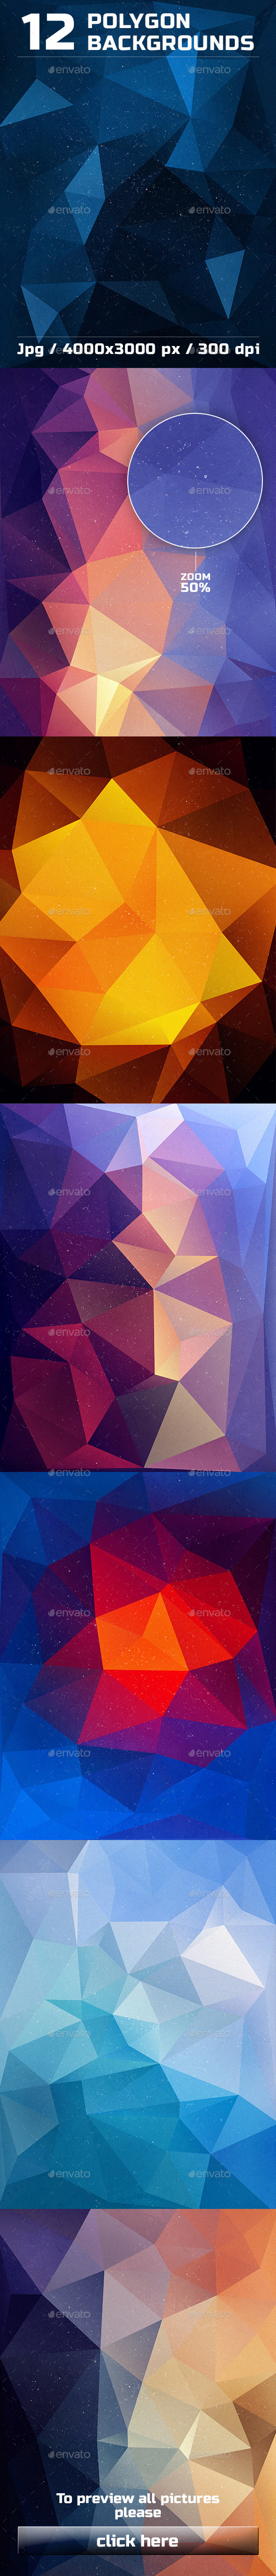 GraphicRiver 12 Polygon Backgrounds Vol 3 10374695